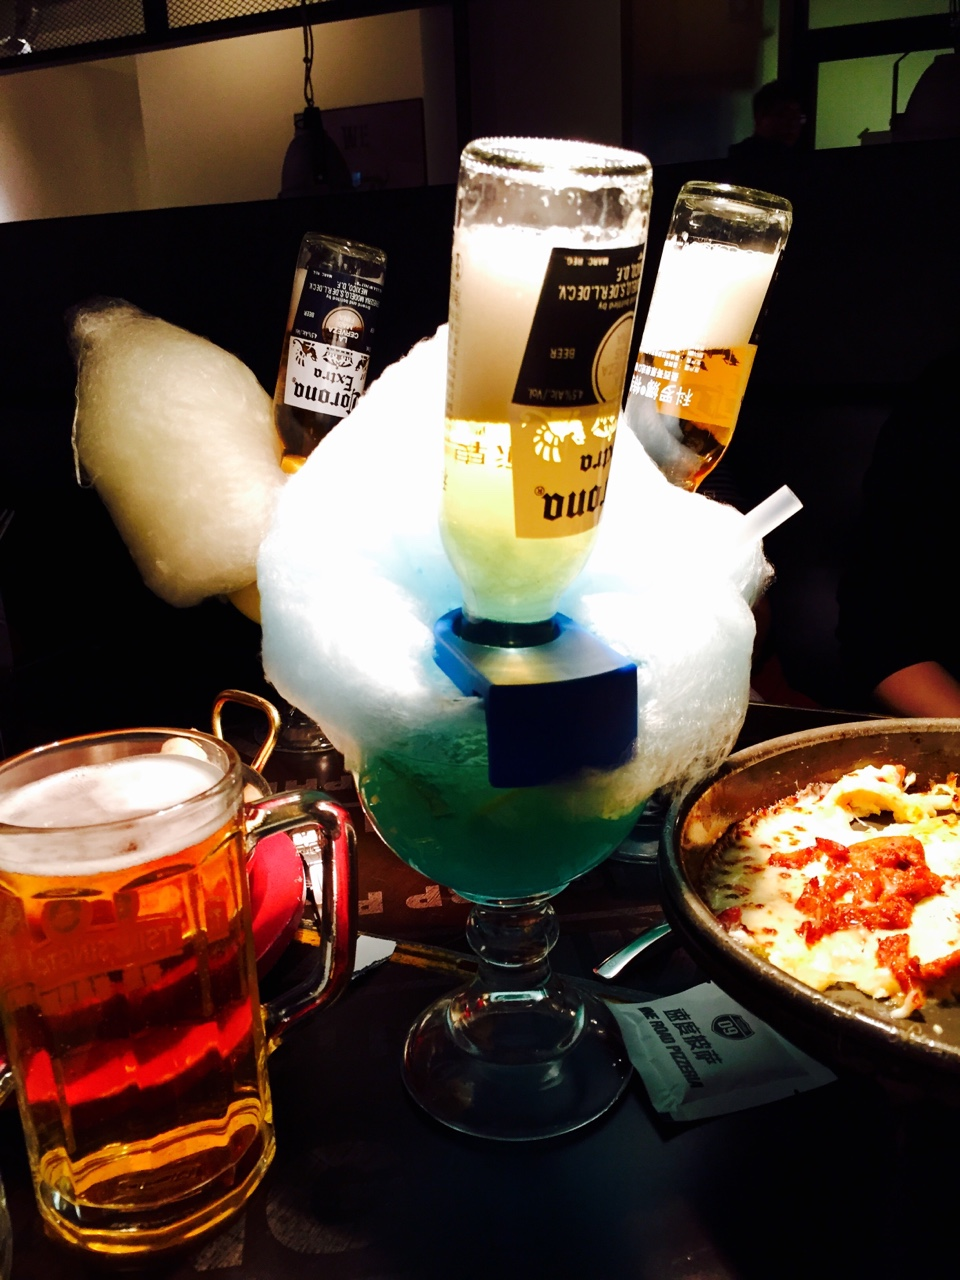 Coronarita with cotton candy. It was like drinking syrup mixed with a pixie stick